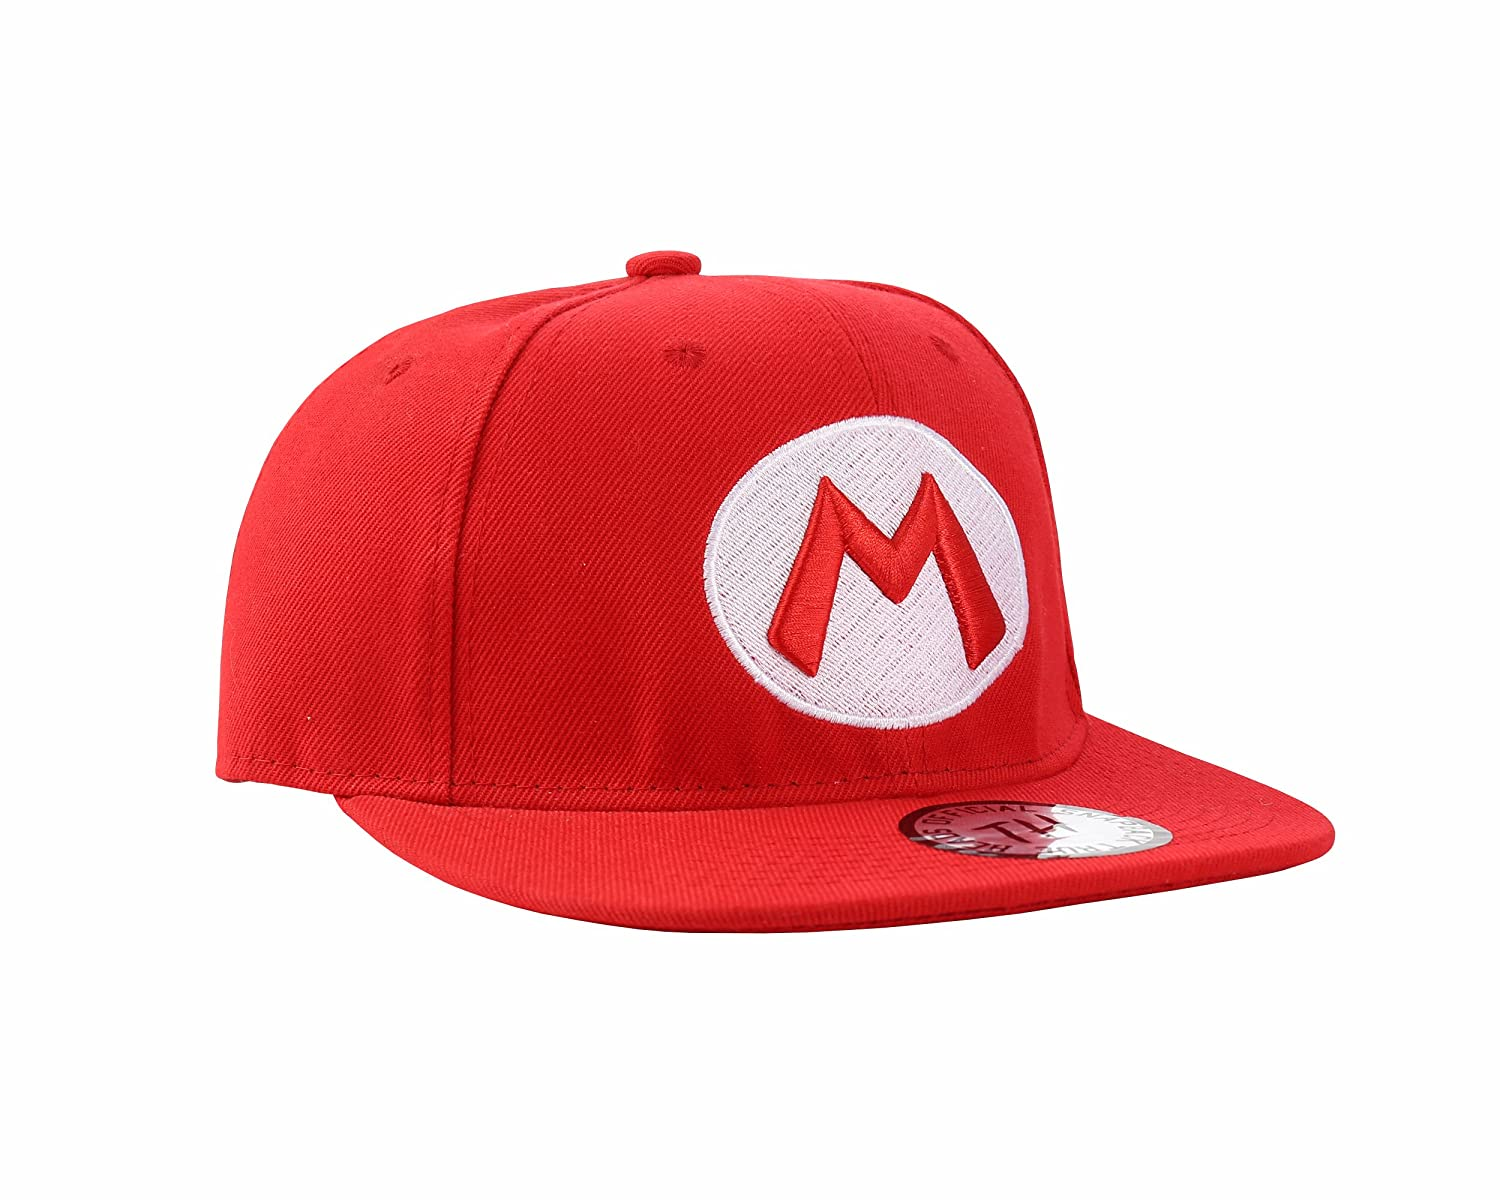 Super Mario Red Snapback Baseball Cap by True heads Underground Kulture TH-SM-SP-M